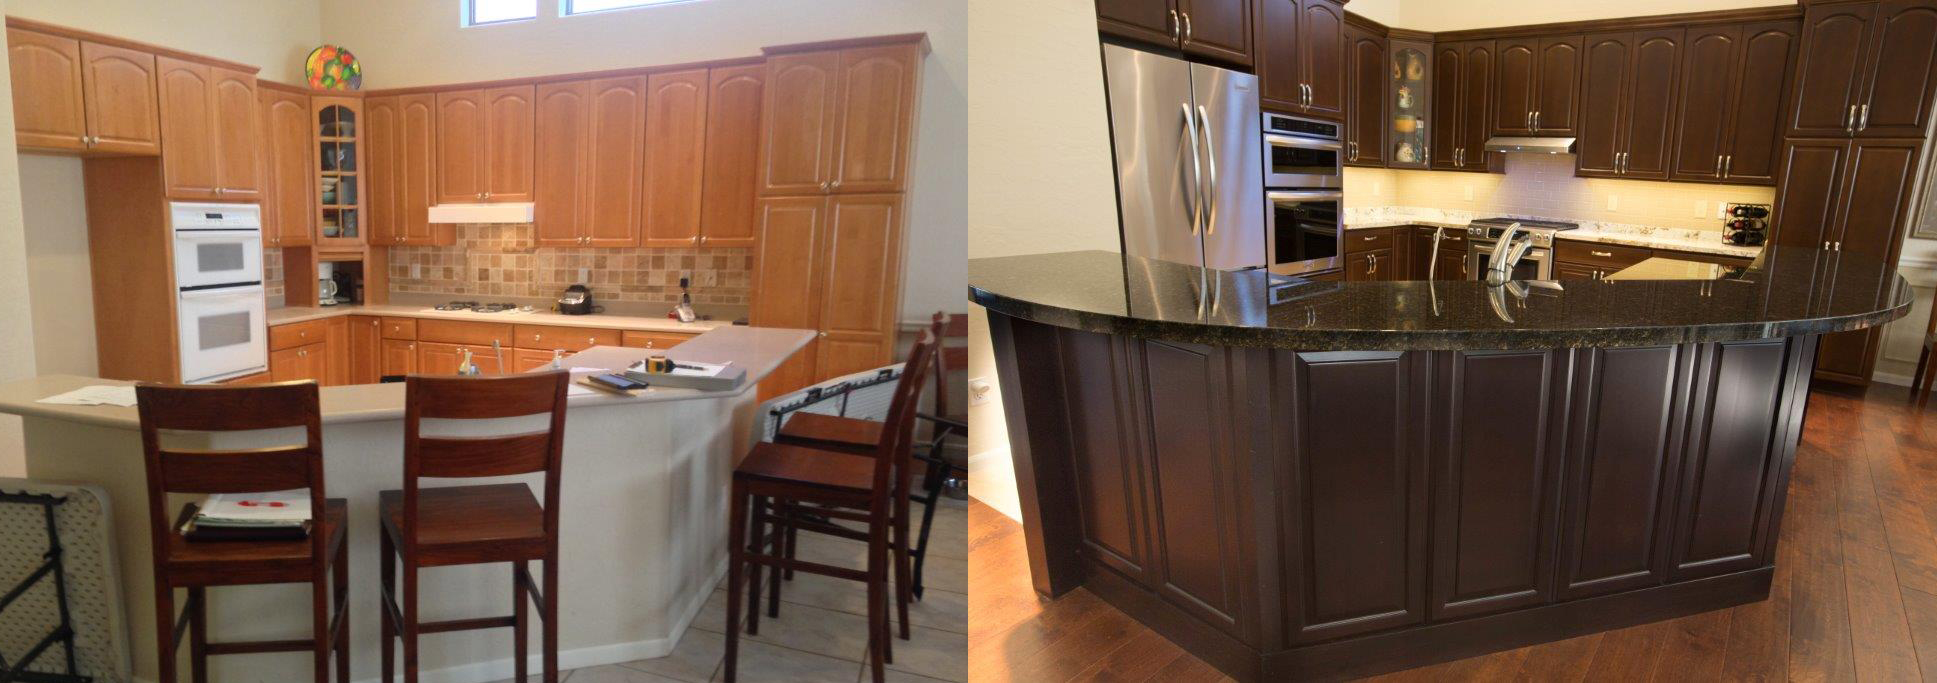 Lacquered Cabinets Kitchen refinished-lacquered-kitchen-cabinets-5